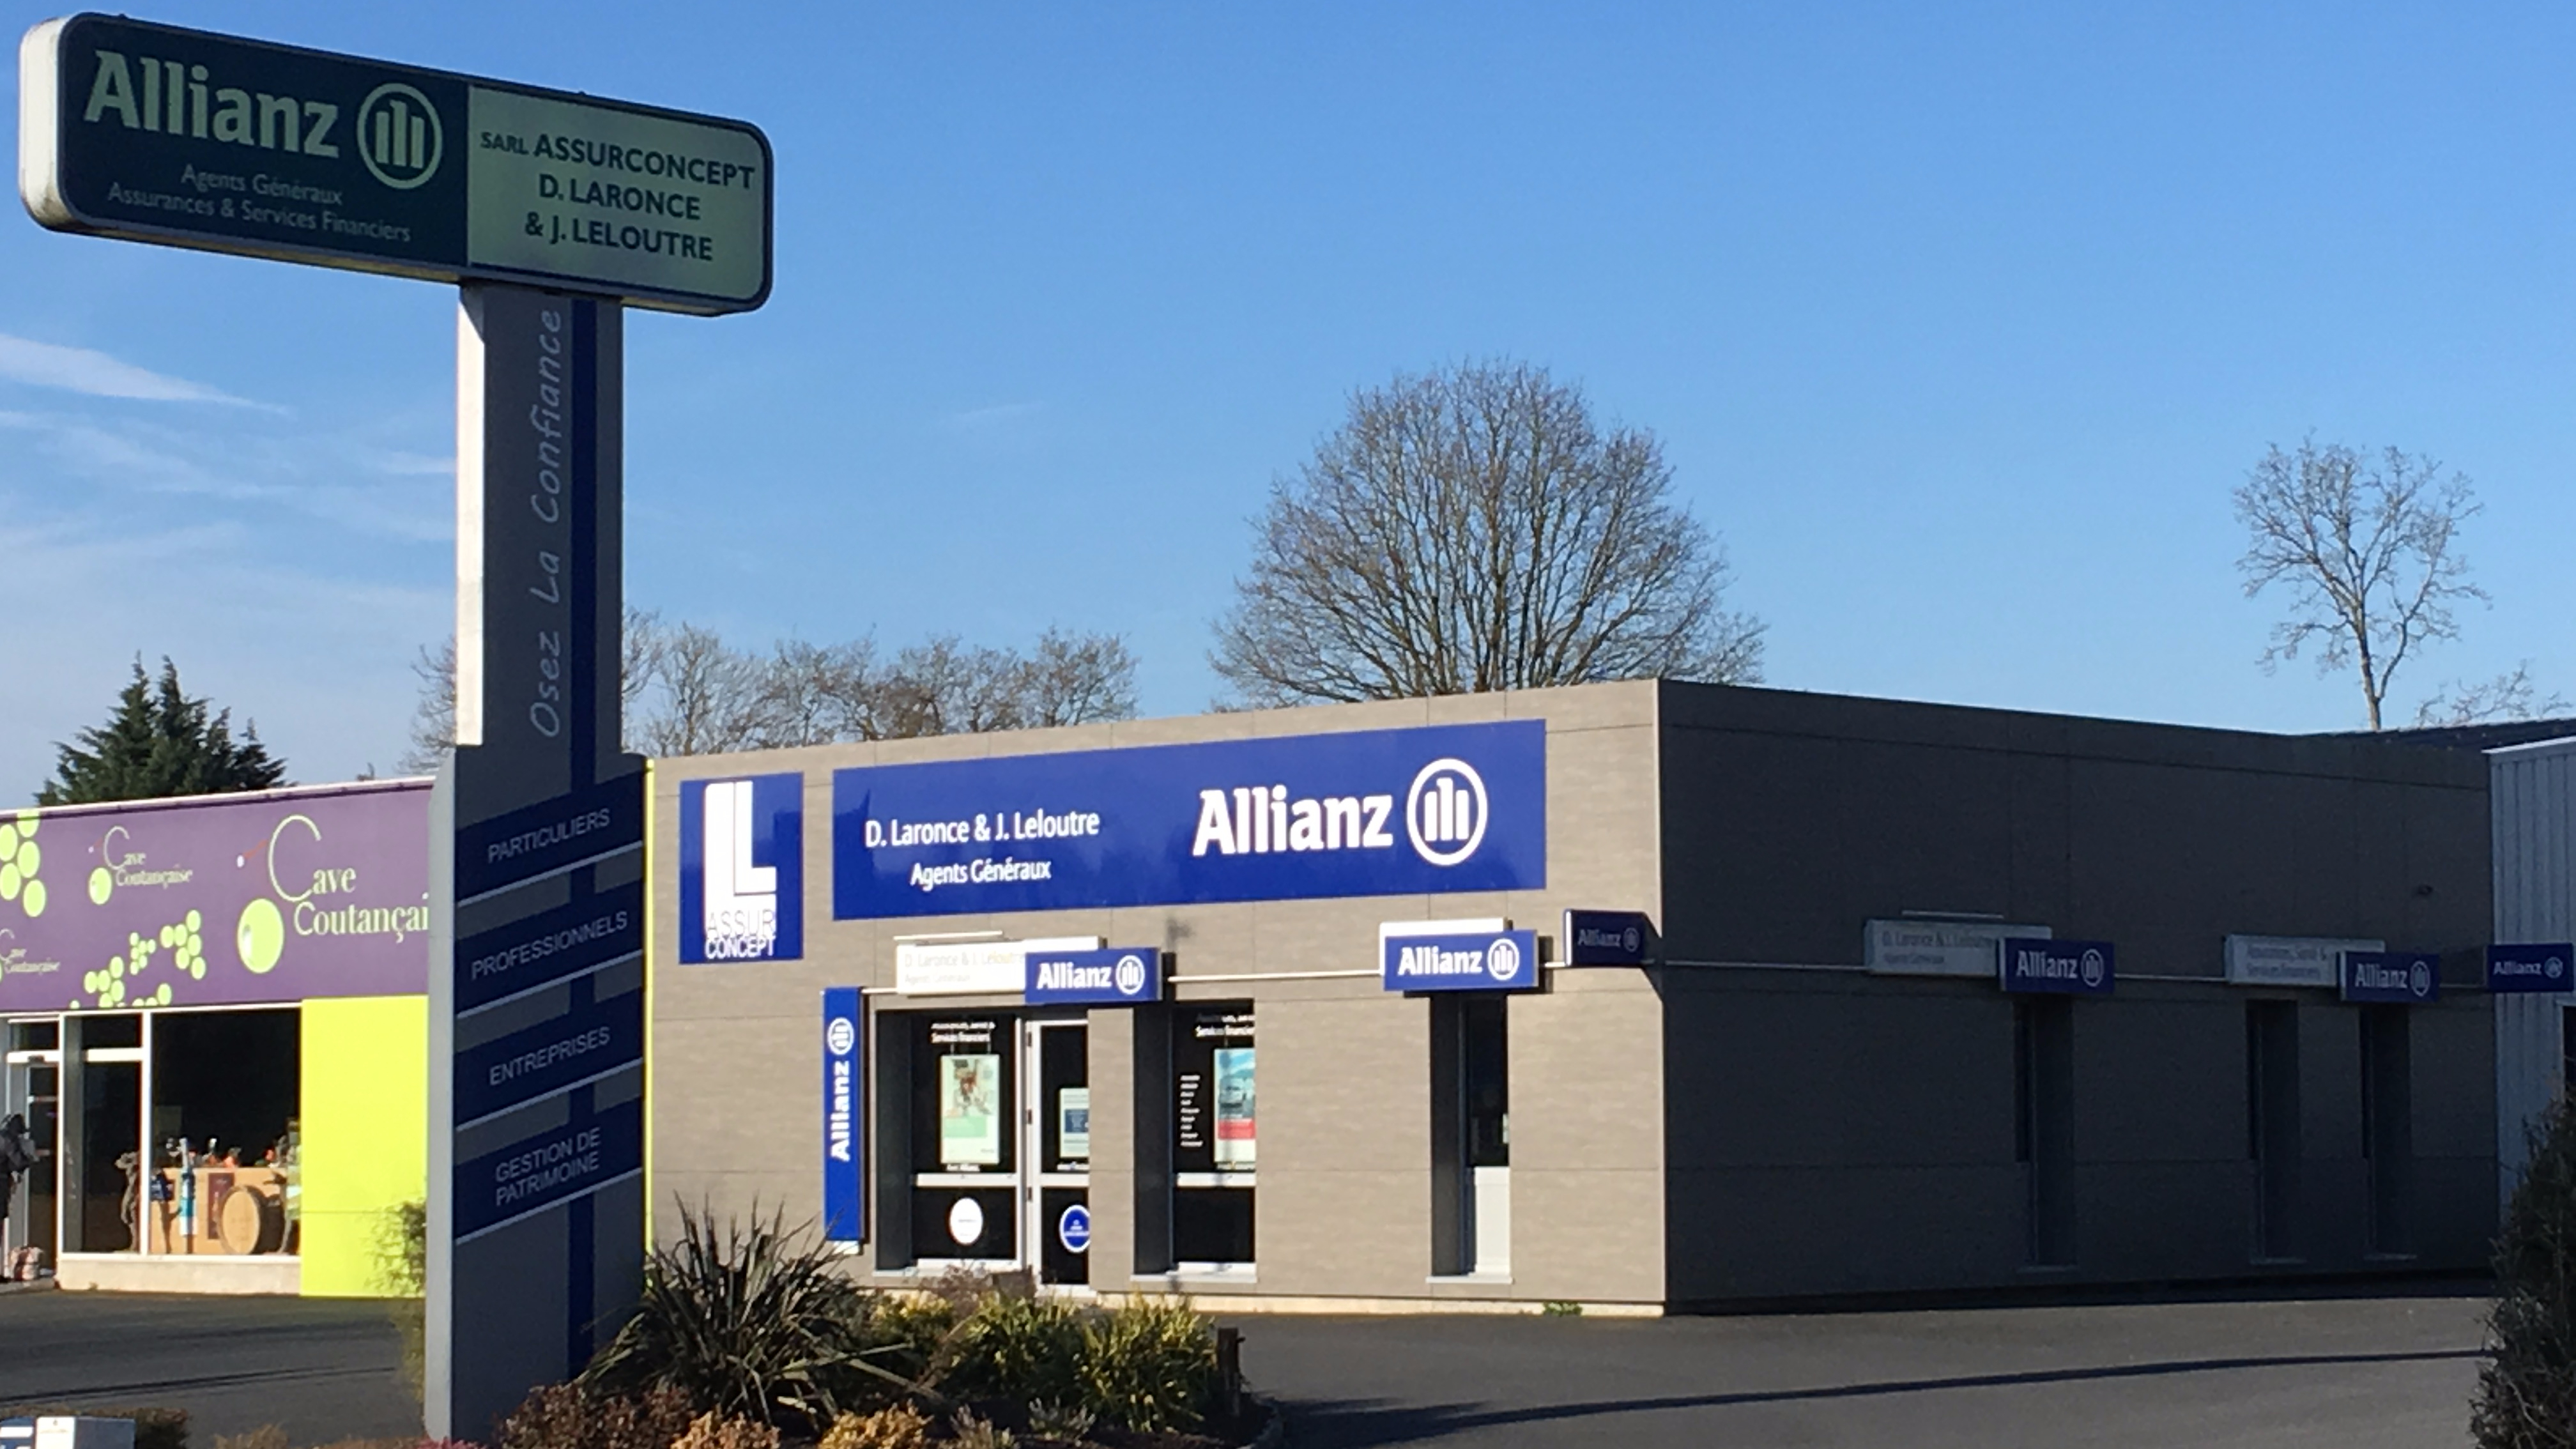 Allianz Coutances st pierre - Assurconcept